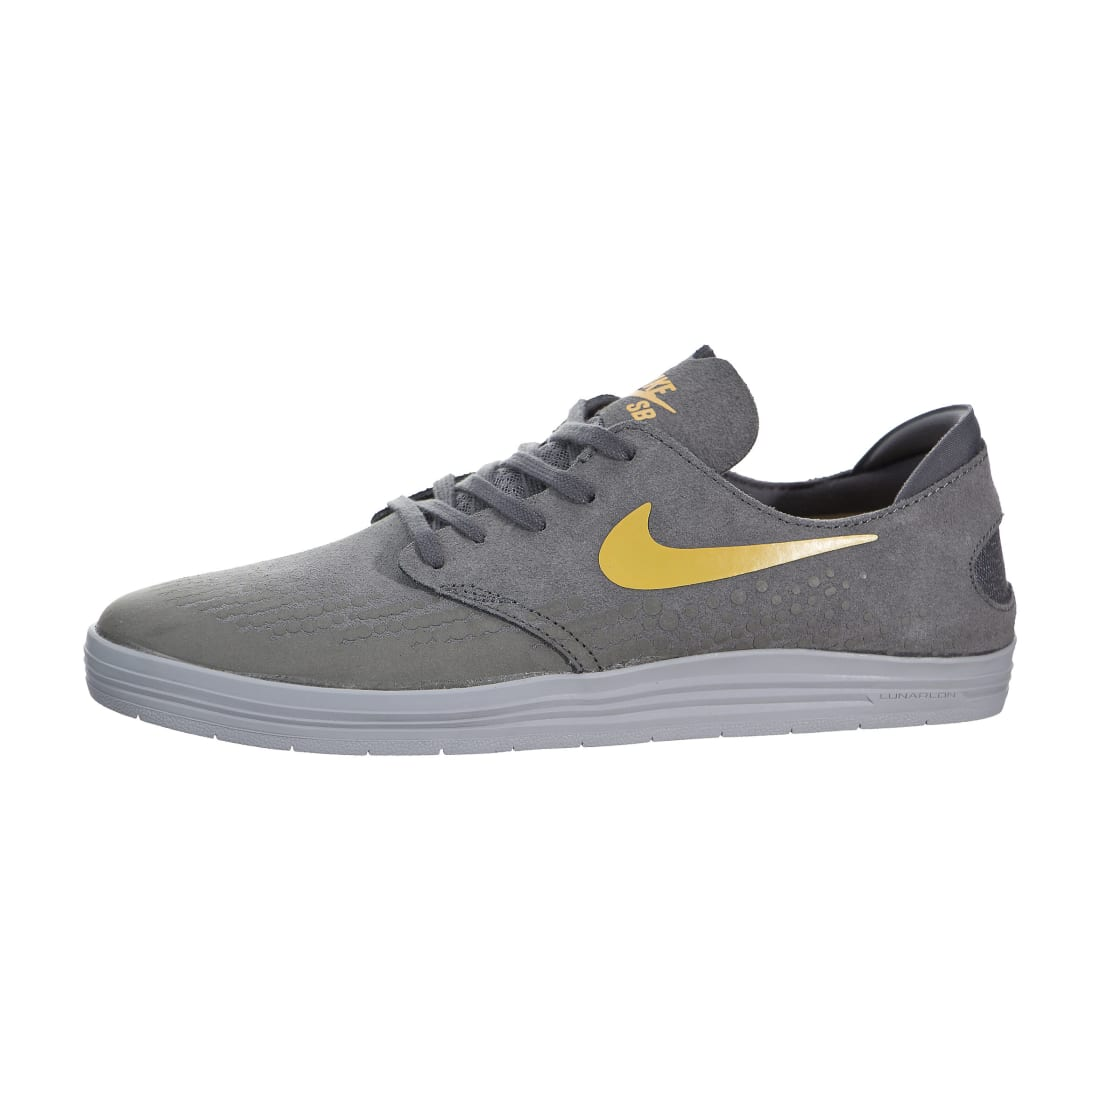 reputable site b22fb 2df51 Nike SB Lunar One Shot